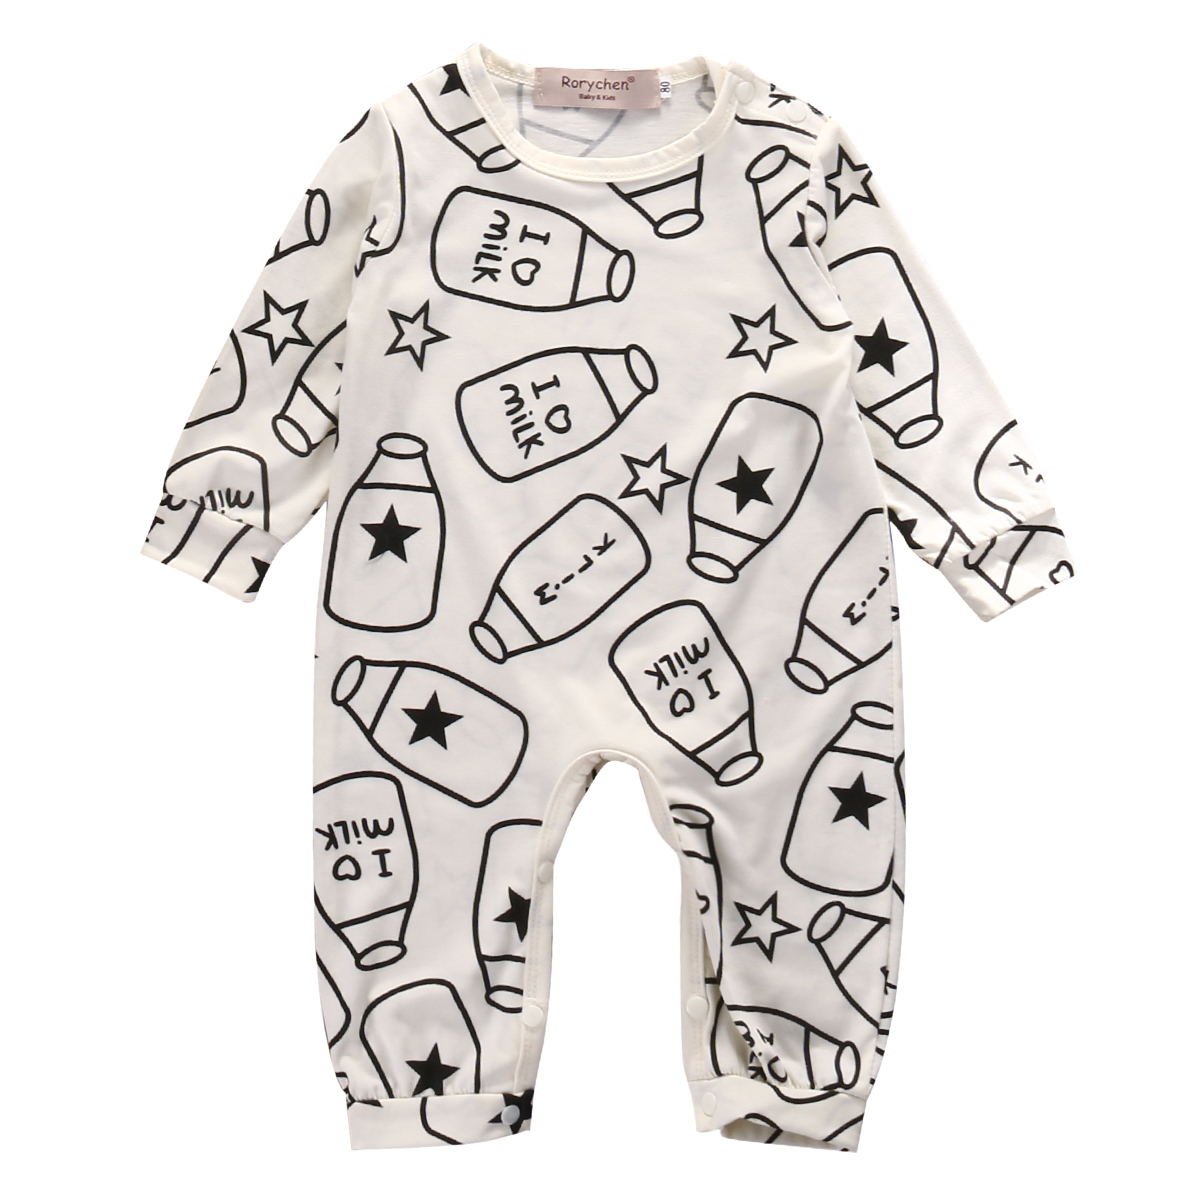 Newborn Baby Clothes   Romper   Boys Girls Cute Jumpsuit Milk Bottle Print Outfits   Rompers